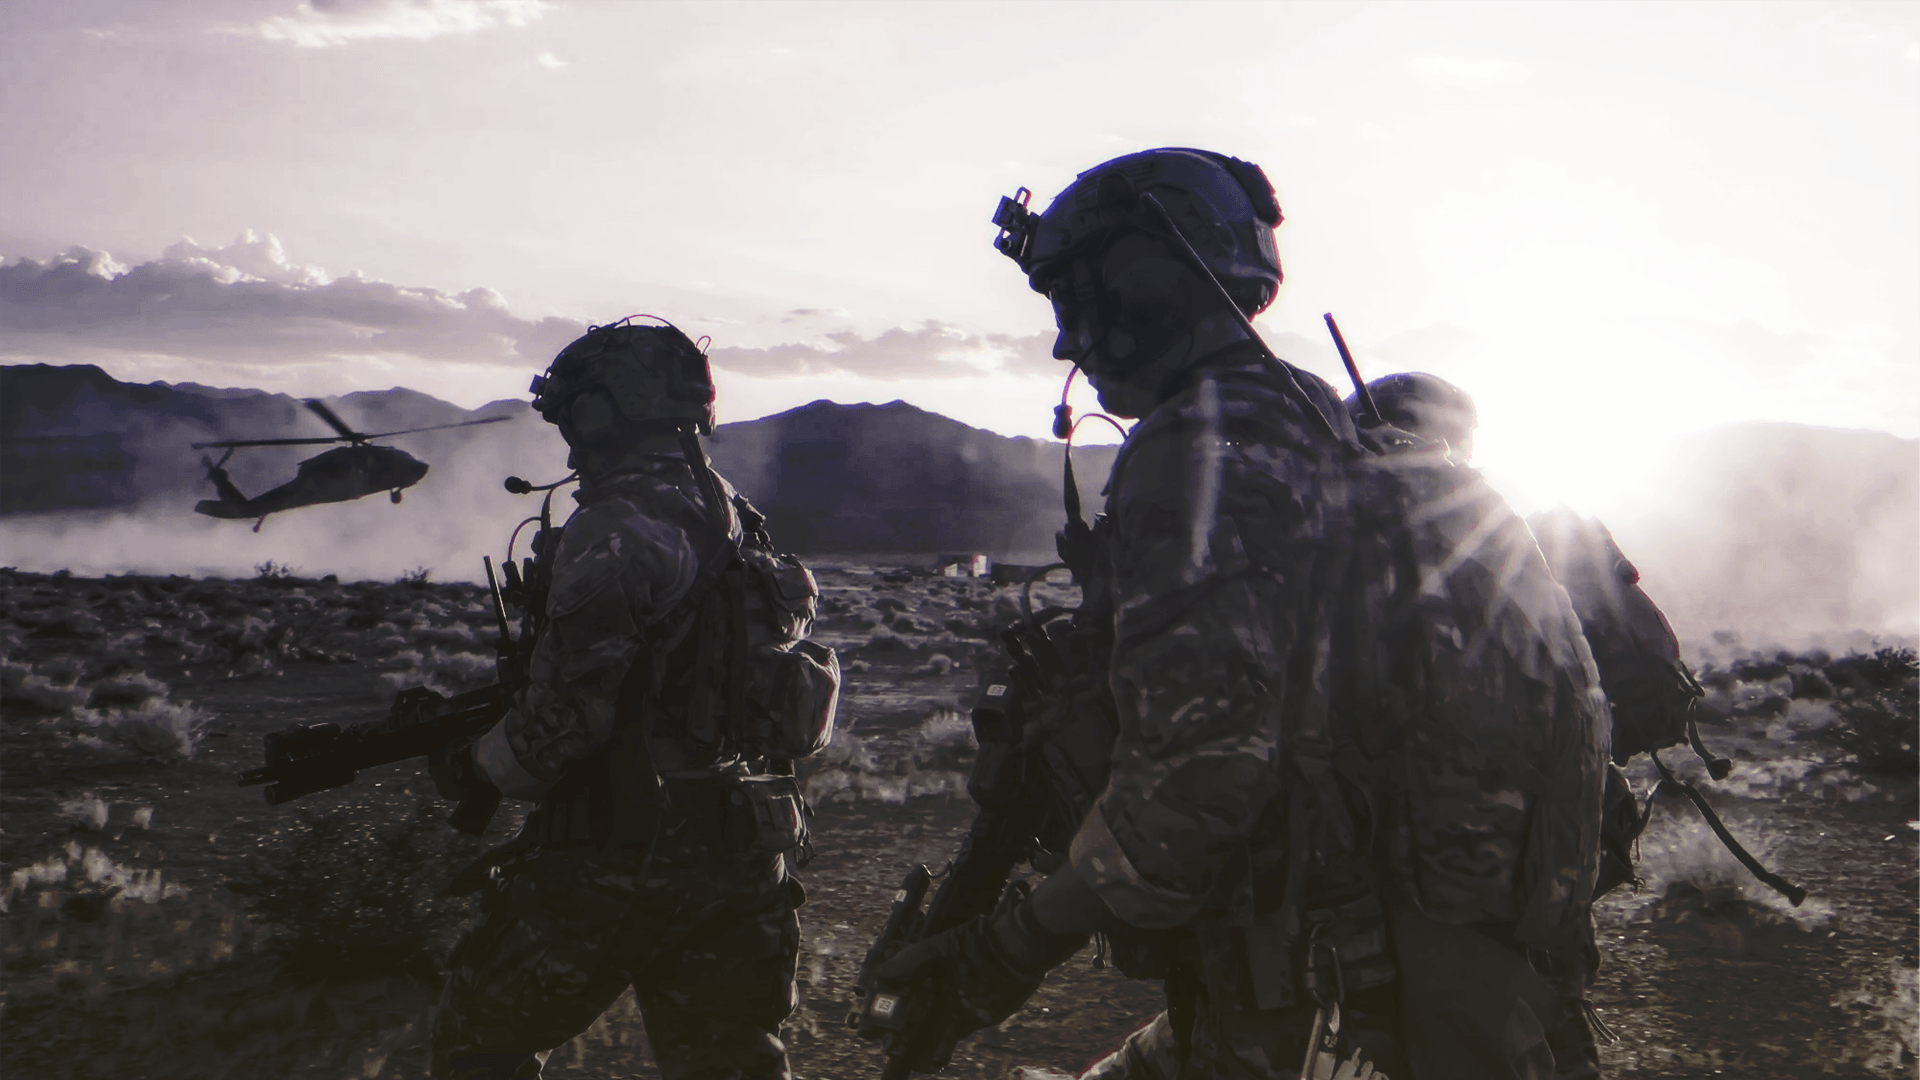 Green Berets assigned to 3rd Special Forces Group. Photo by Sgt. Steven Lewis.